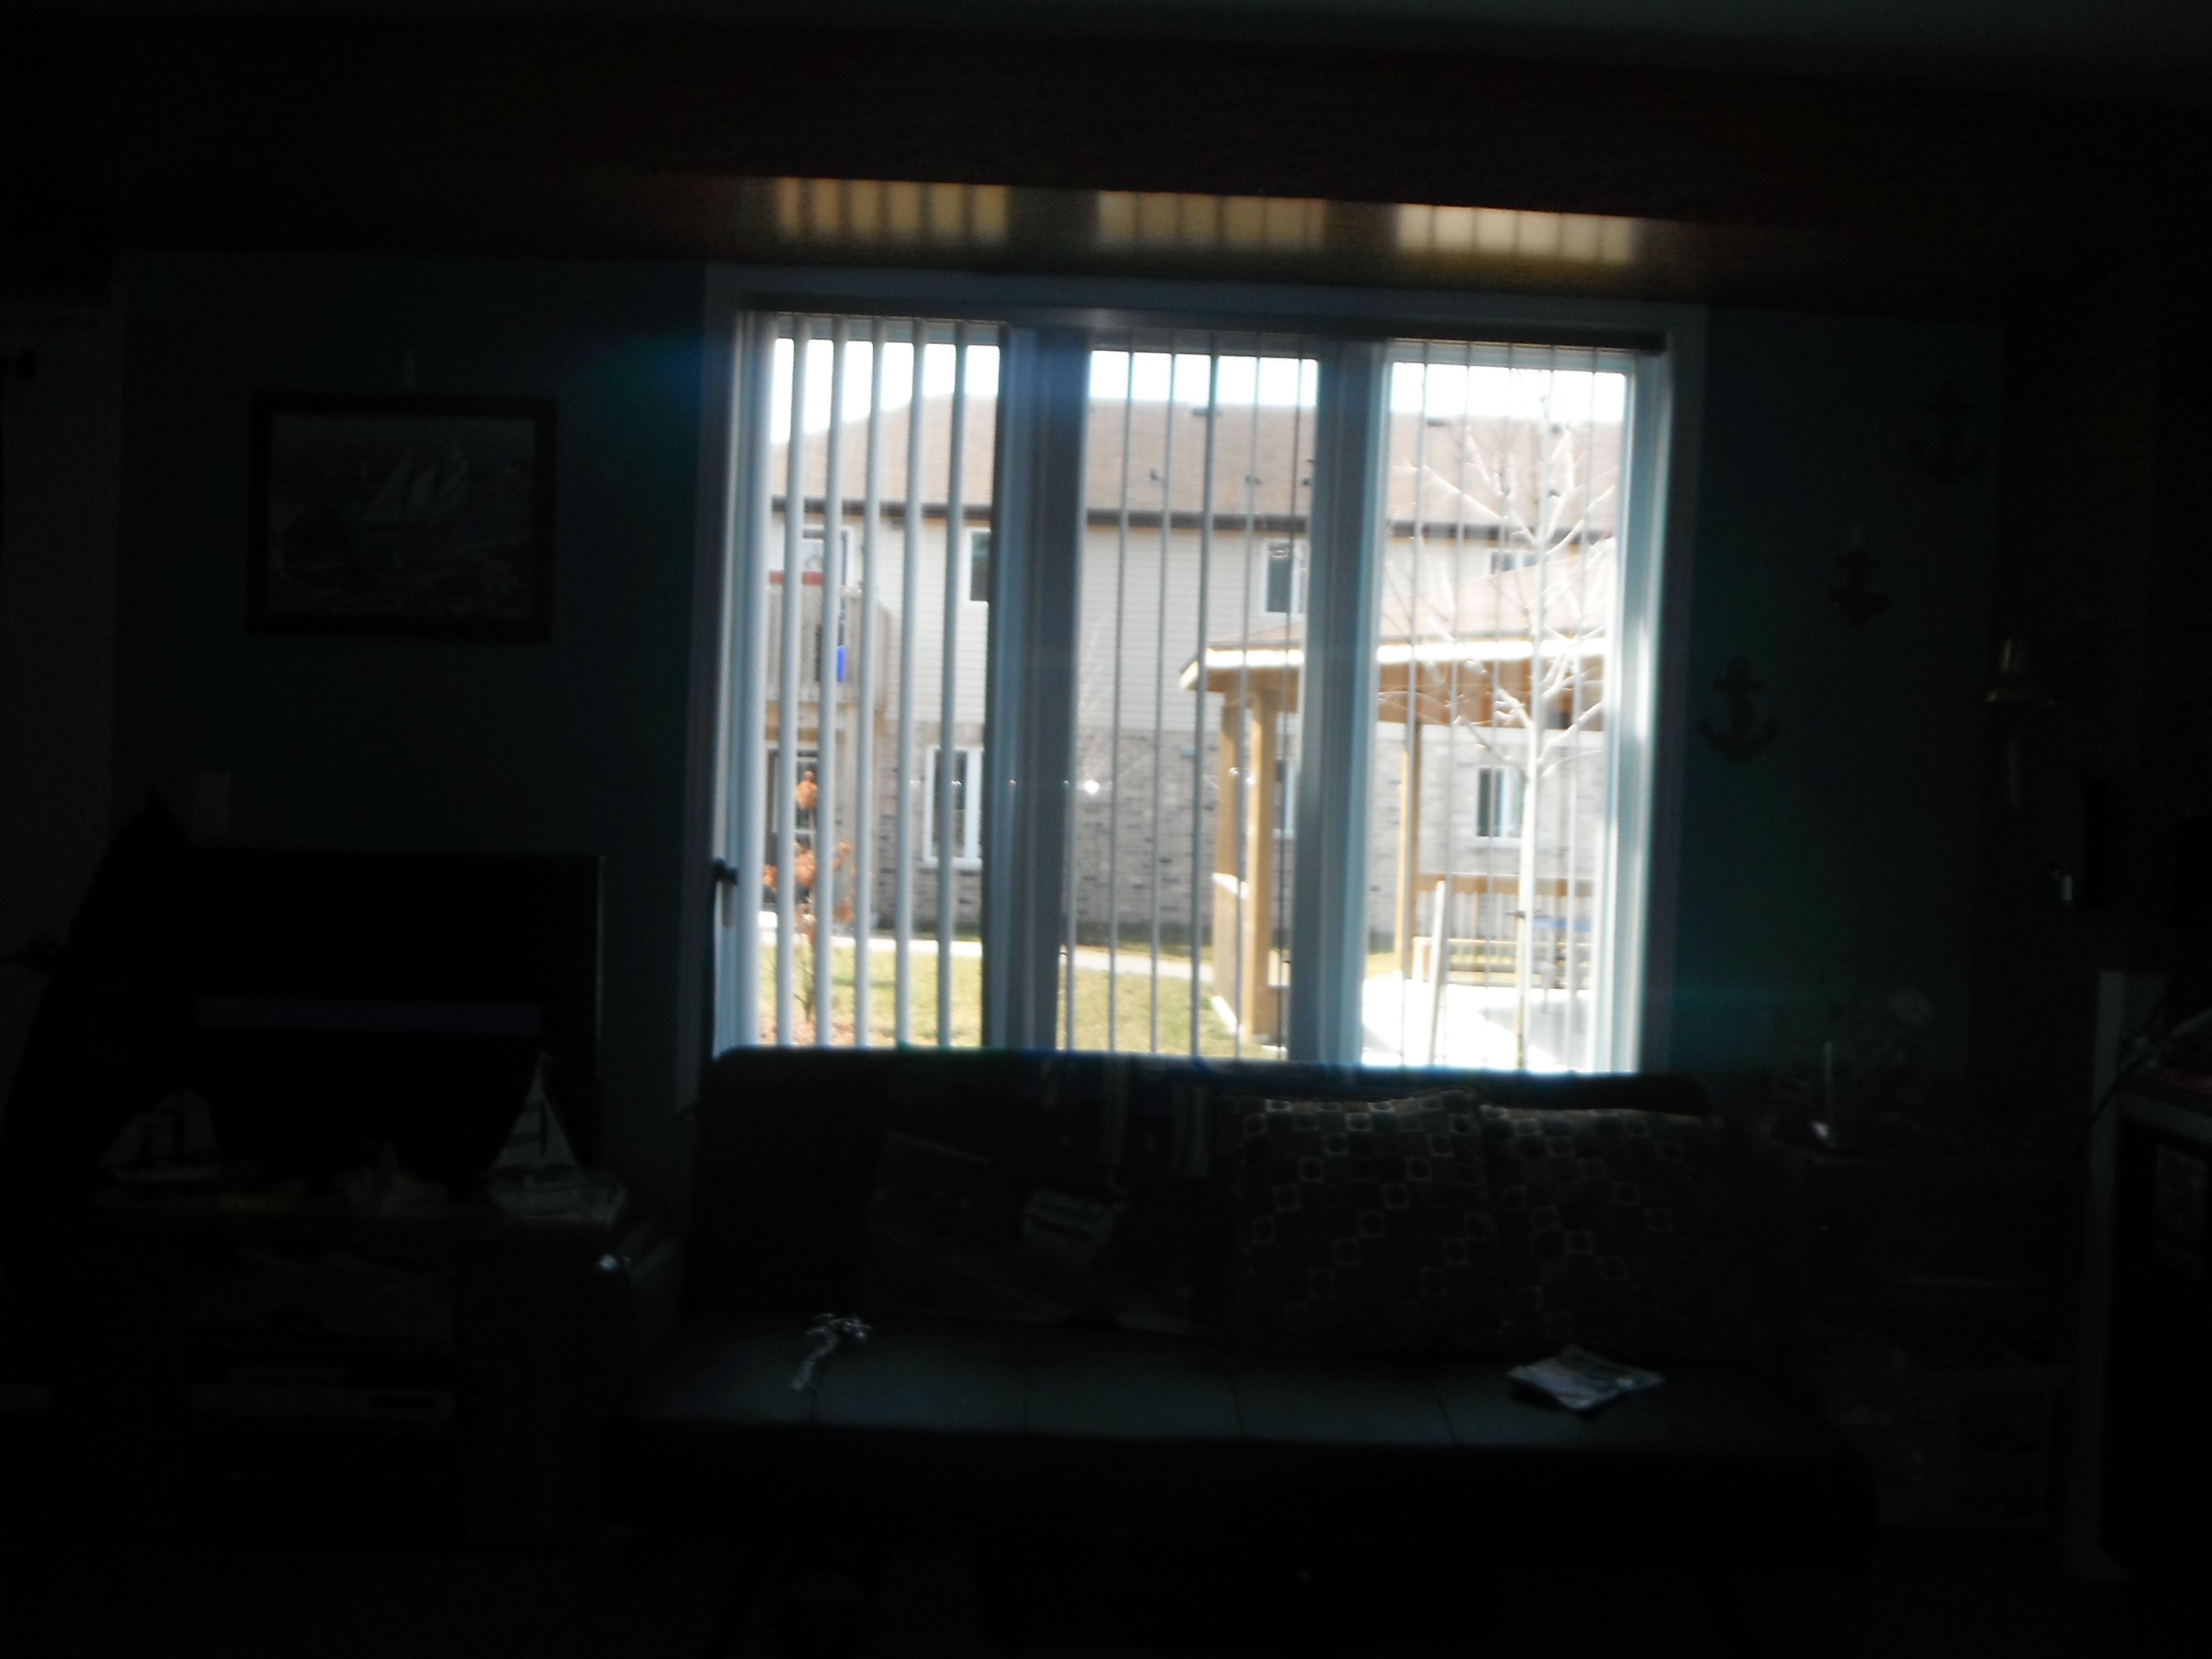 Picture of Motorized/electric vertical blinds?